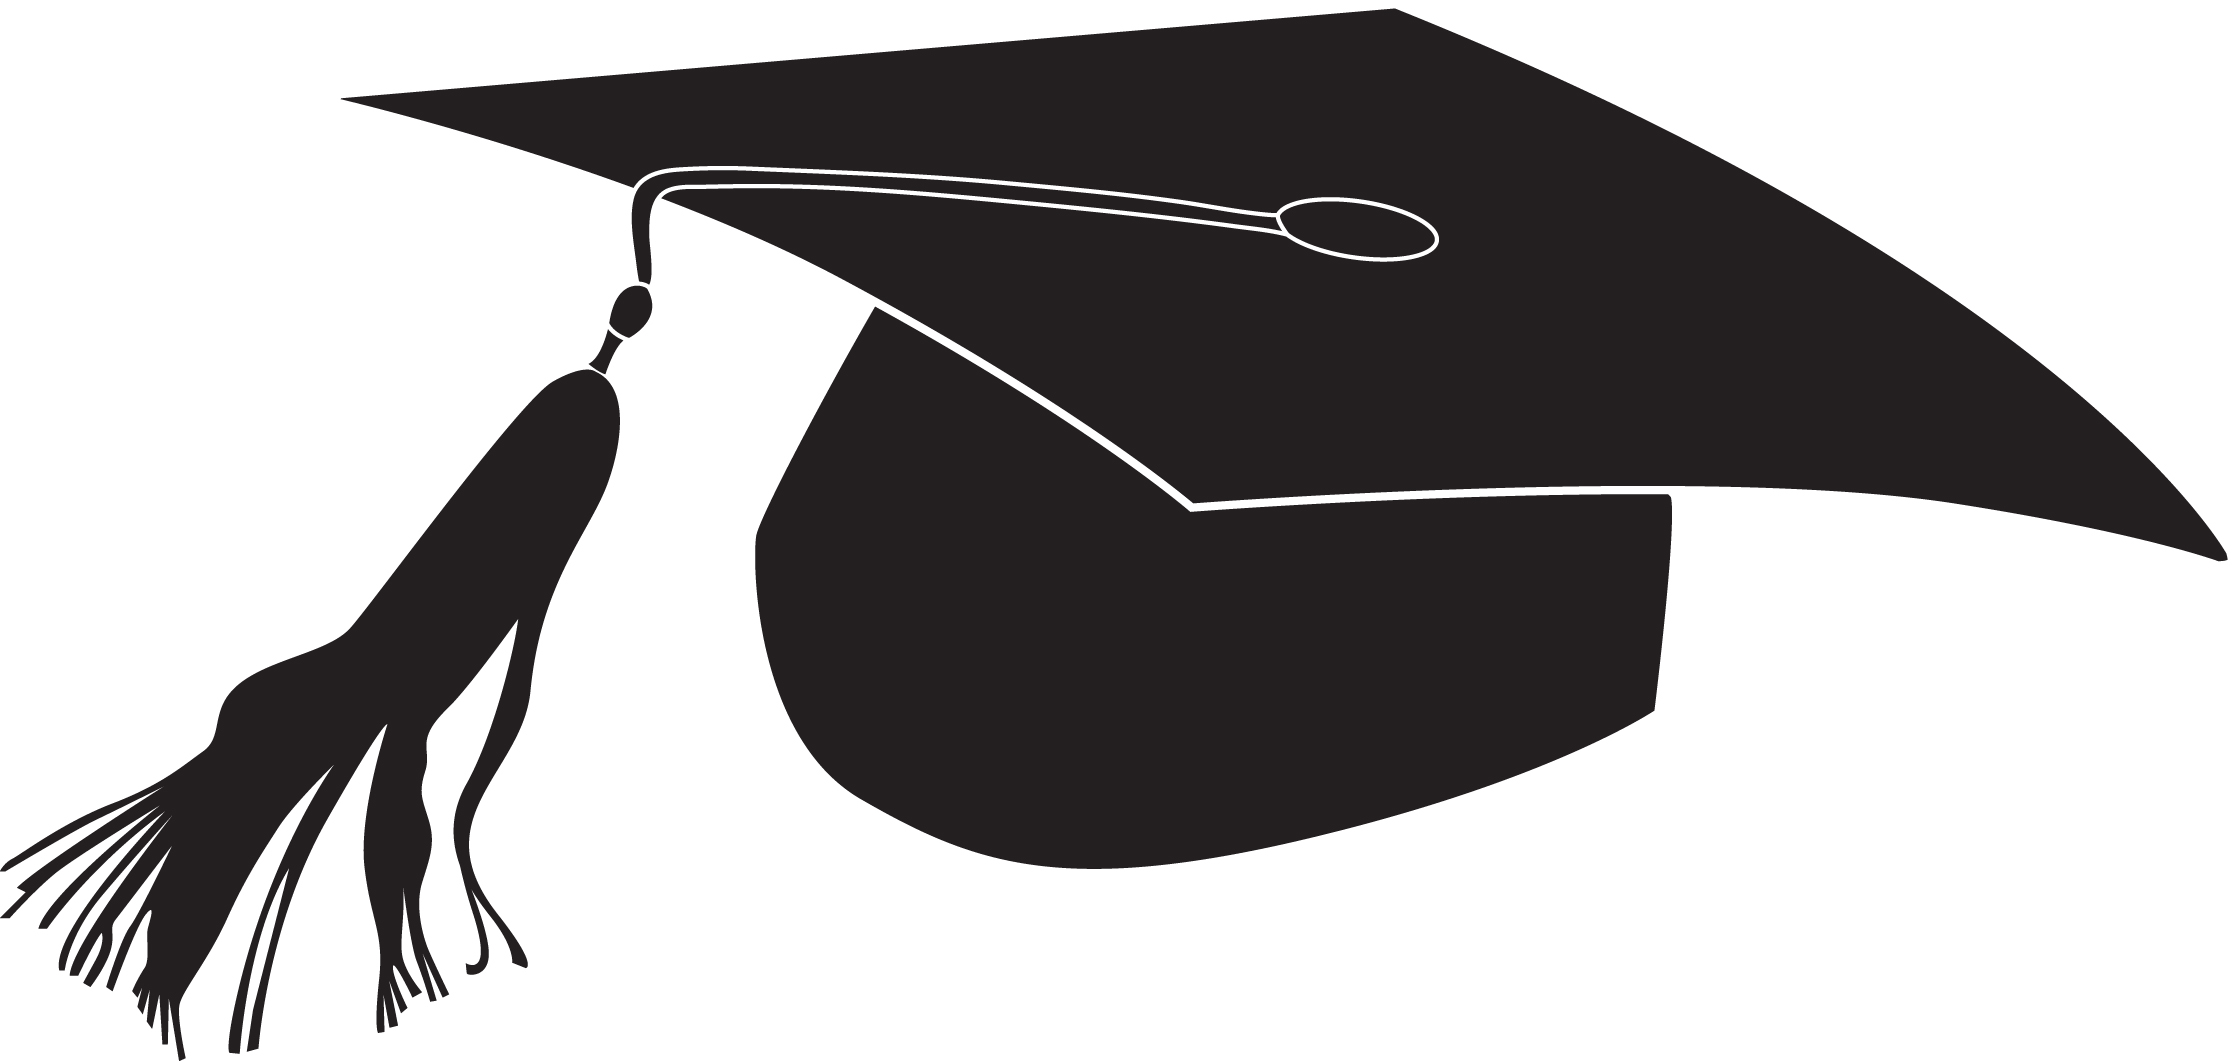 Graduation Tassel Vector at GetDrawings.com.